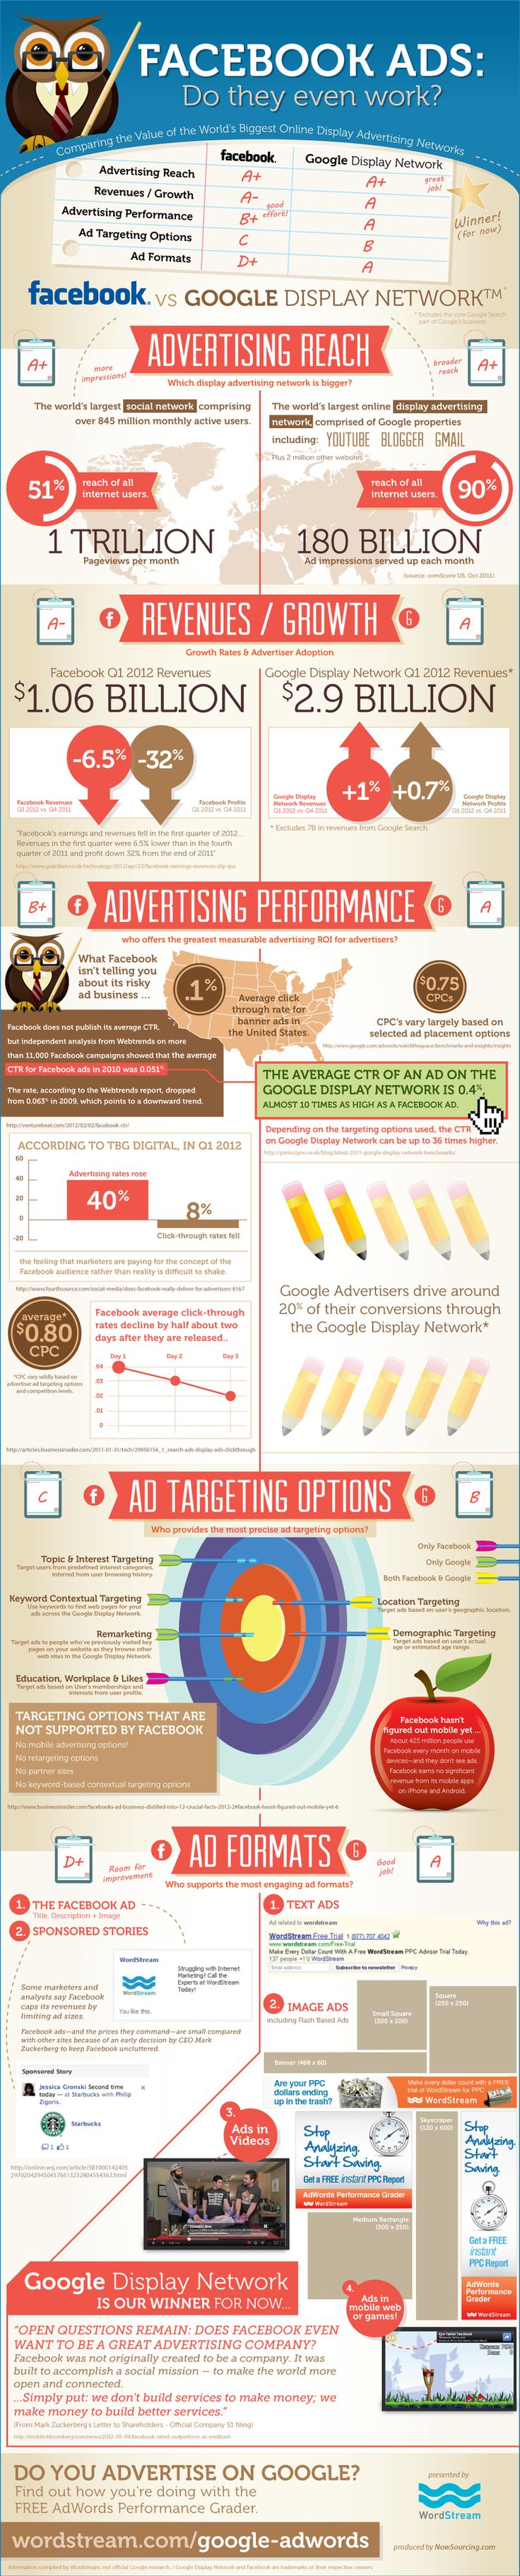 How Does Advertising Compare Through Facebook vs. Google? #infographic